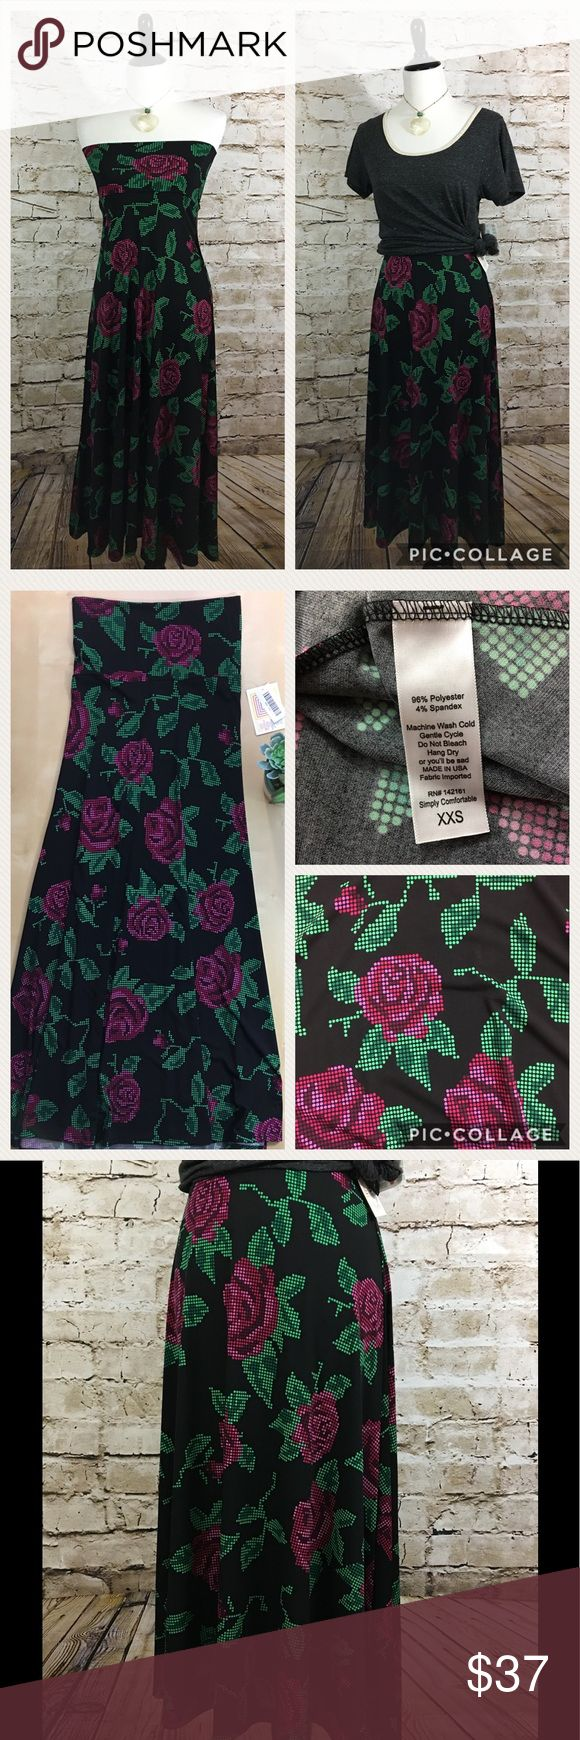 "LuLaRoe XXS Maxi Skirt NWT No flaws, black with magenta pink and green cross stitch floral pattern. Floor length flowing skirt with wide waist band. Easily converts to tube top style dress. Great for layering. Transitions effortlessly from day to night.  Size XXS fits 00-0 Waist: 13"" Length: 41"" Please review all photos thoroughly  Feel free to ask questions  🚫trades 🚫modeling requests  👍🏻reasonable offers welcome! LuLaRoe Skirts Maxi"